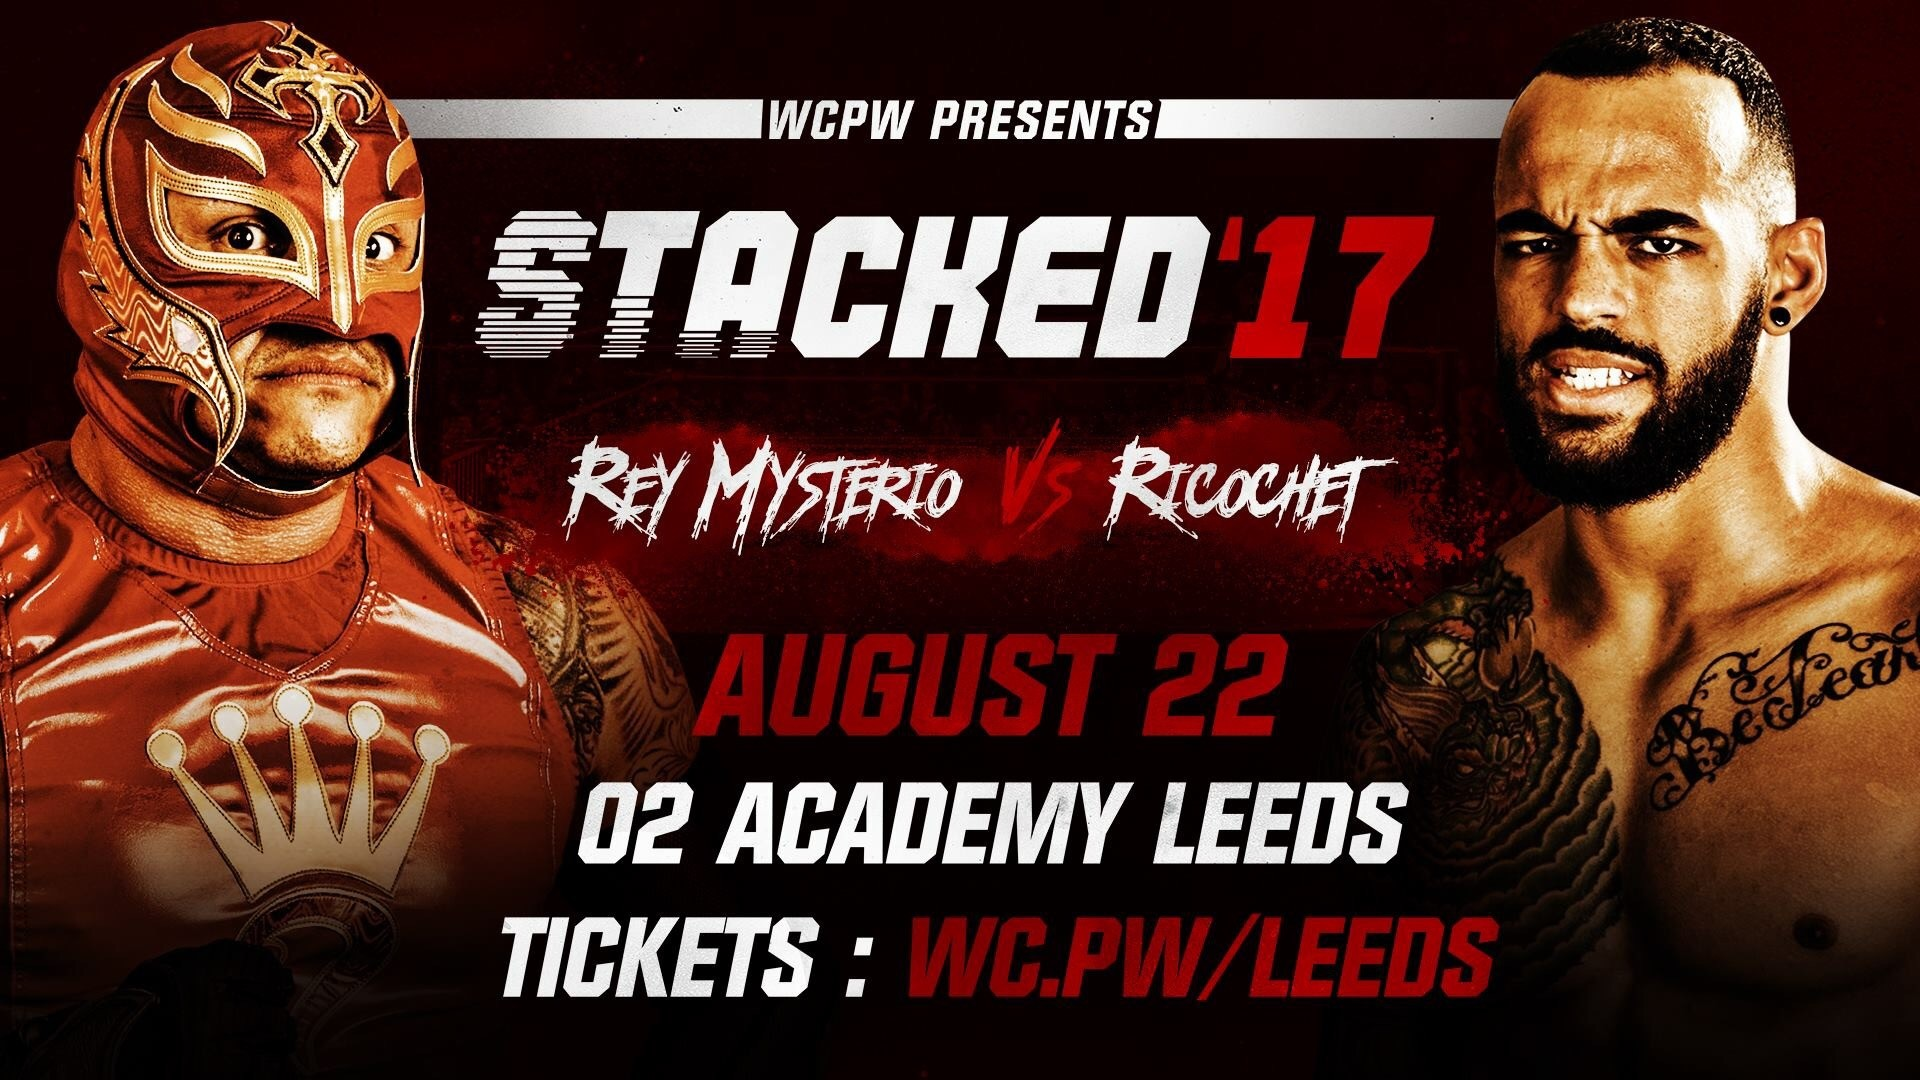 """WCPW have announced that Pro Wrestling World Cup Qualifiers, Rey Mysterio  will face Ricochet in singles action at """"Stacked 2017"""" plus The Briscoe  Brothers, …"""